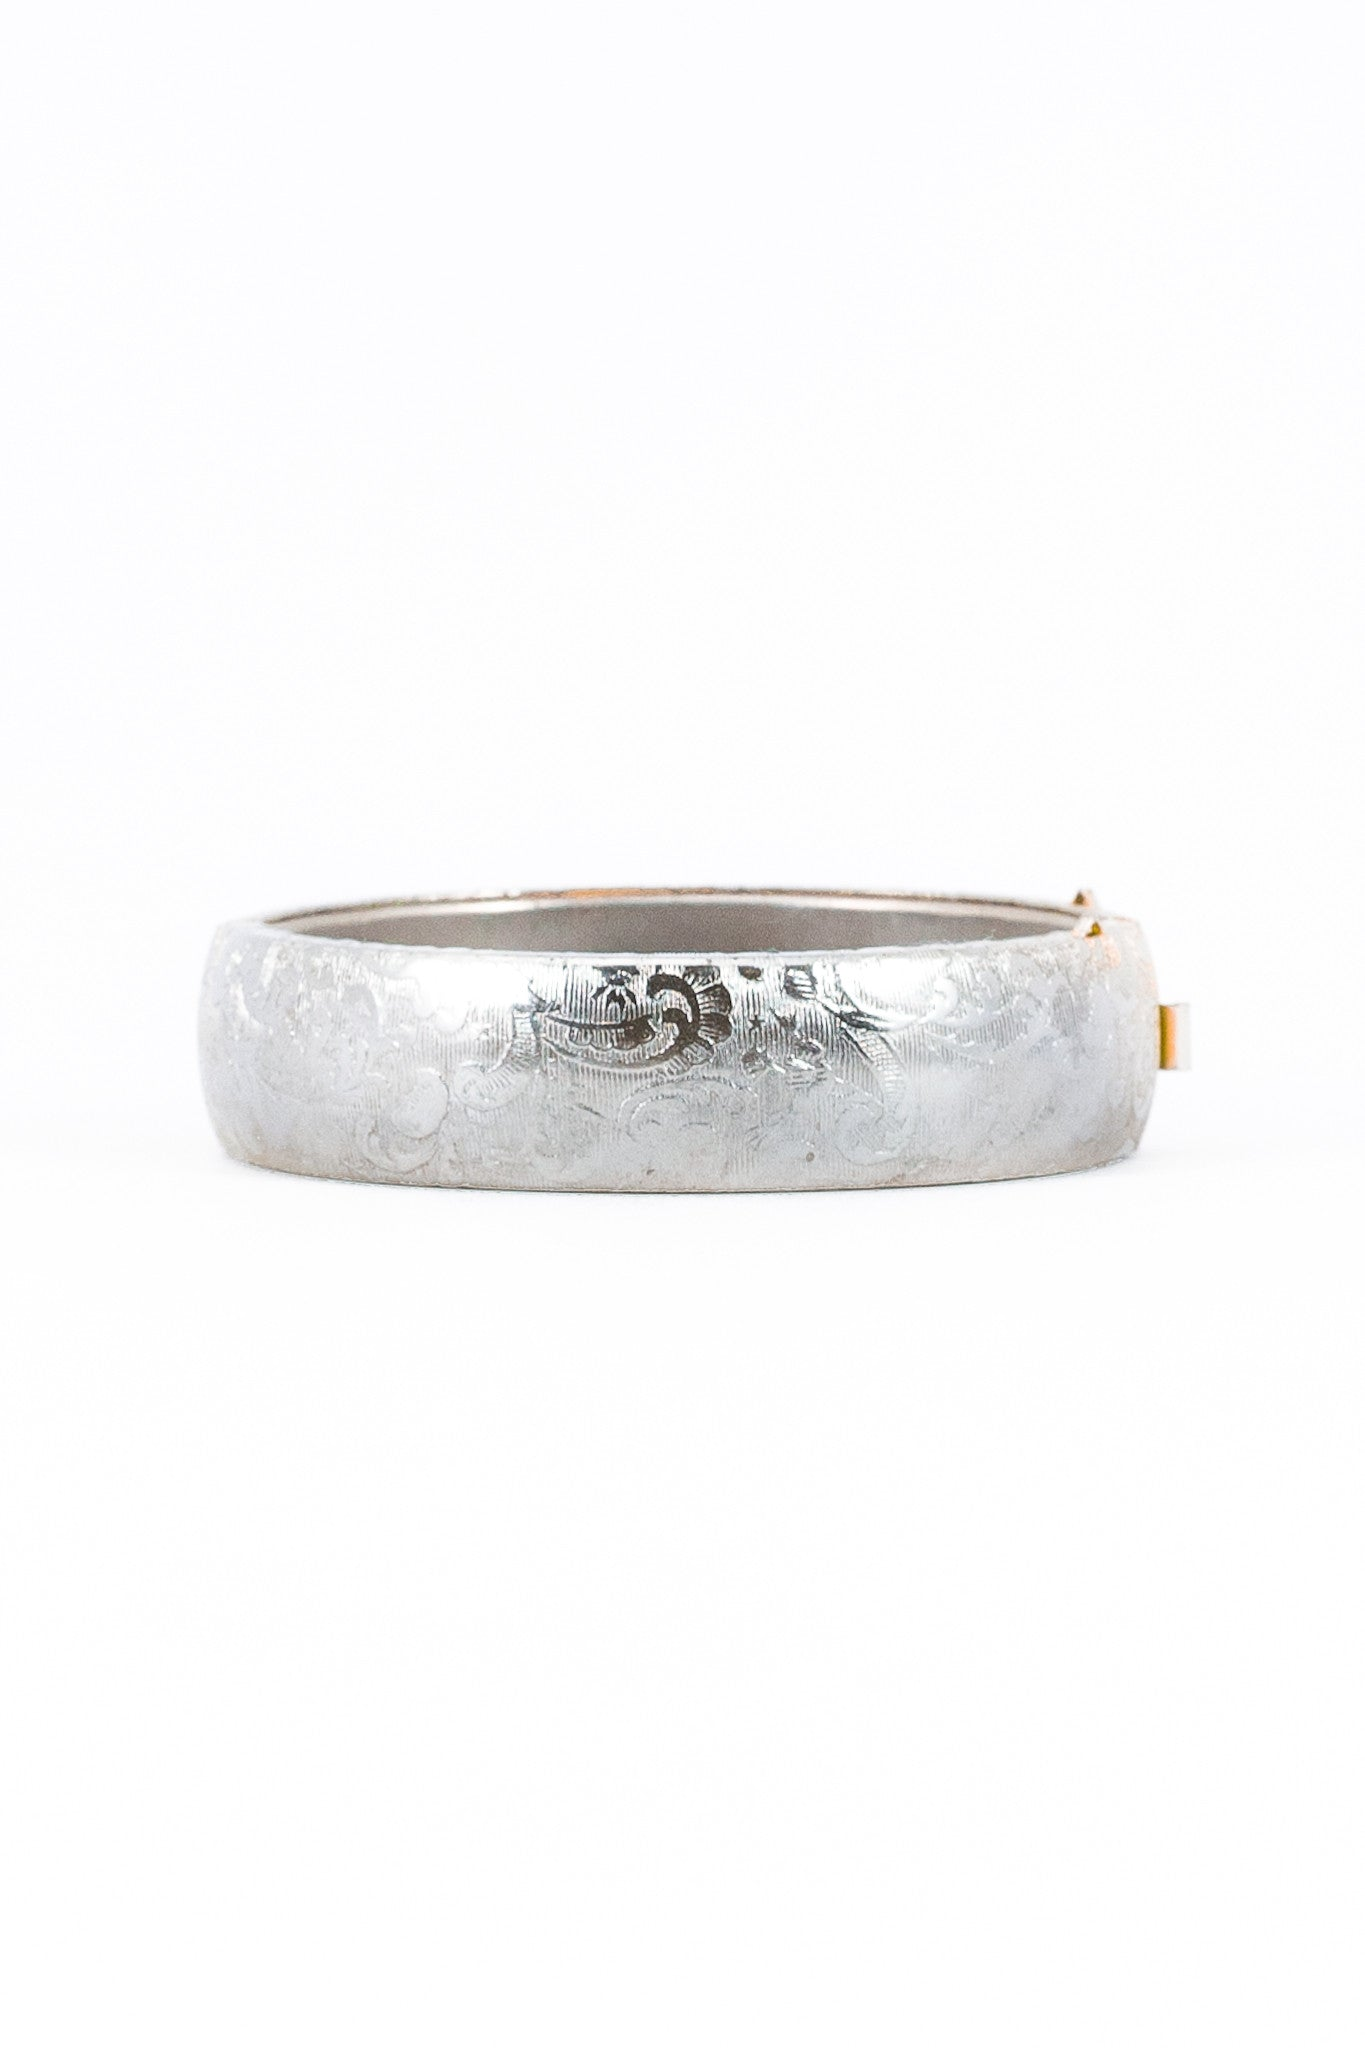 60's__Vintage__Etched Paisley Silver Bangle